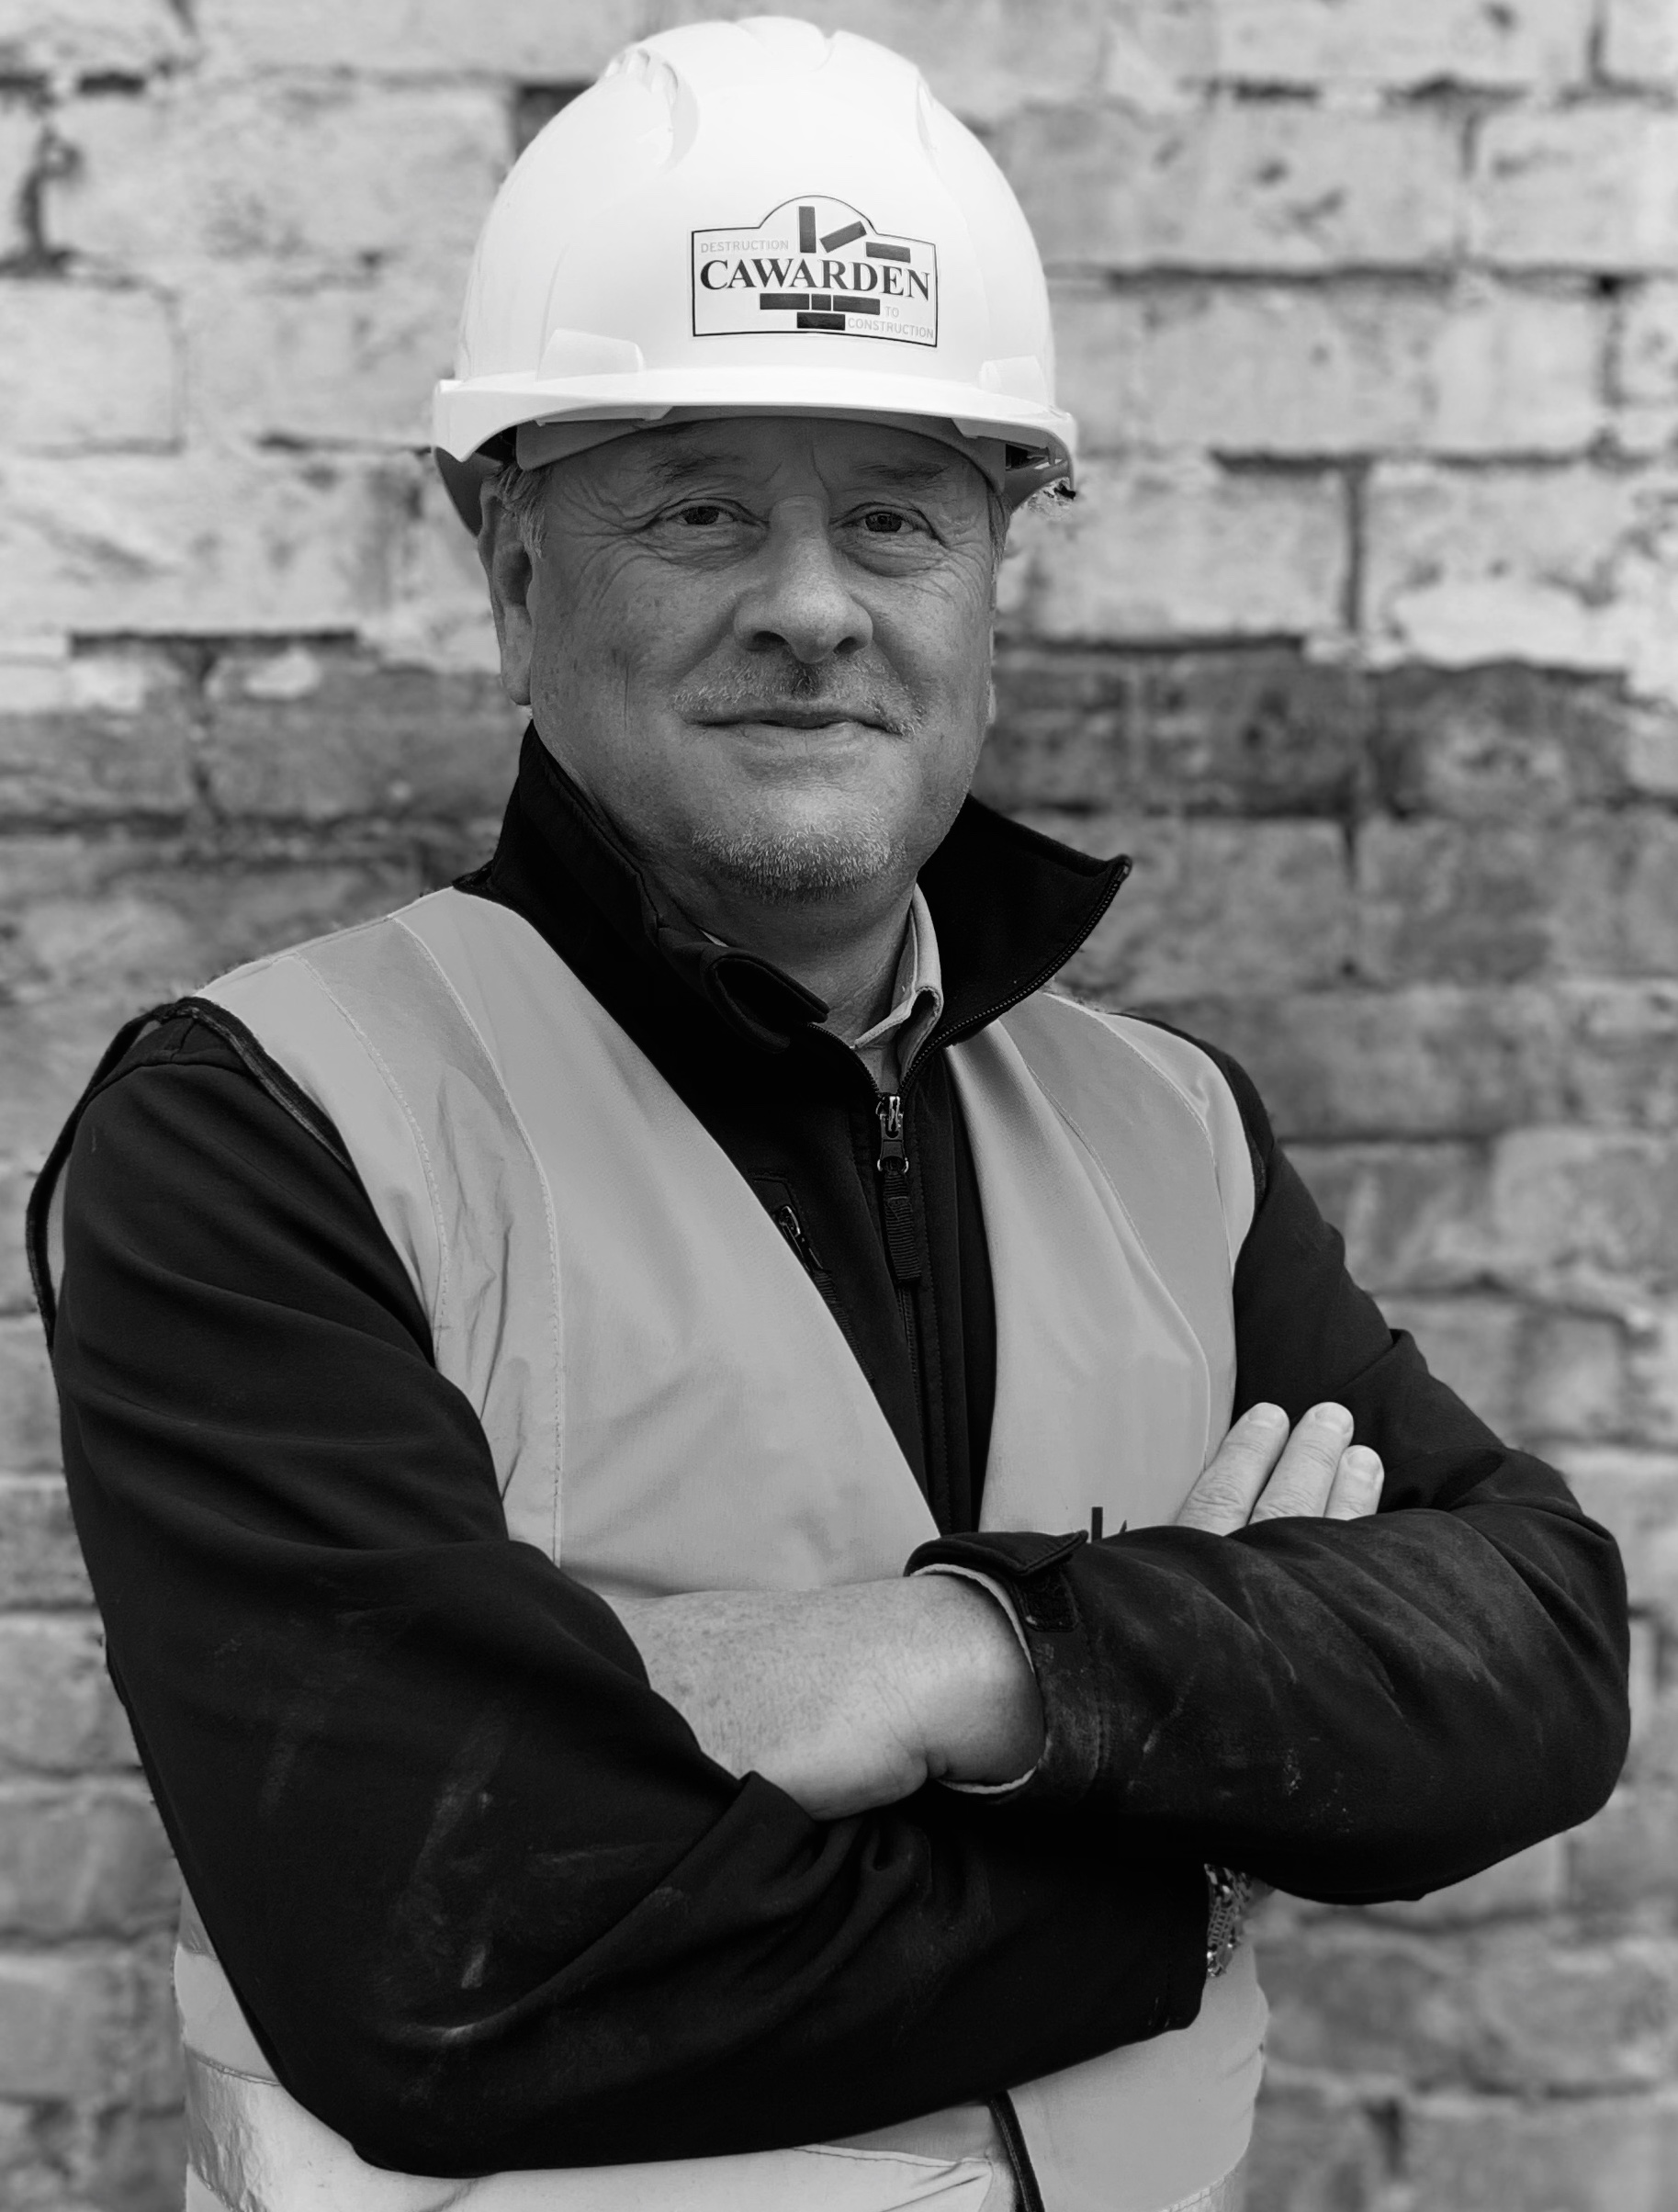 NFDC officially announces appointment of William Crooks as President.